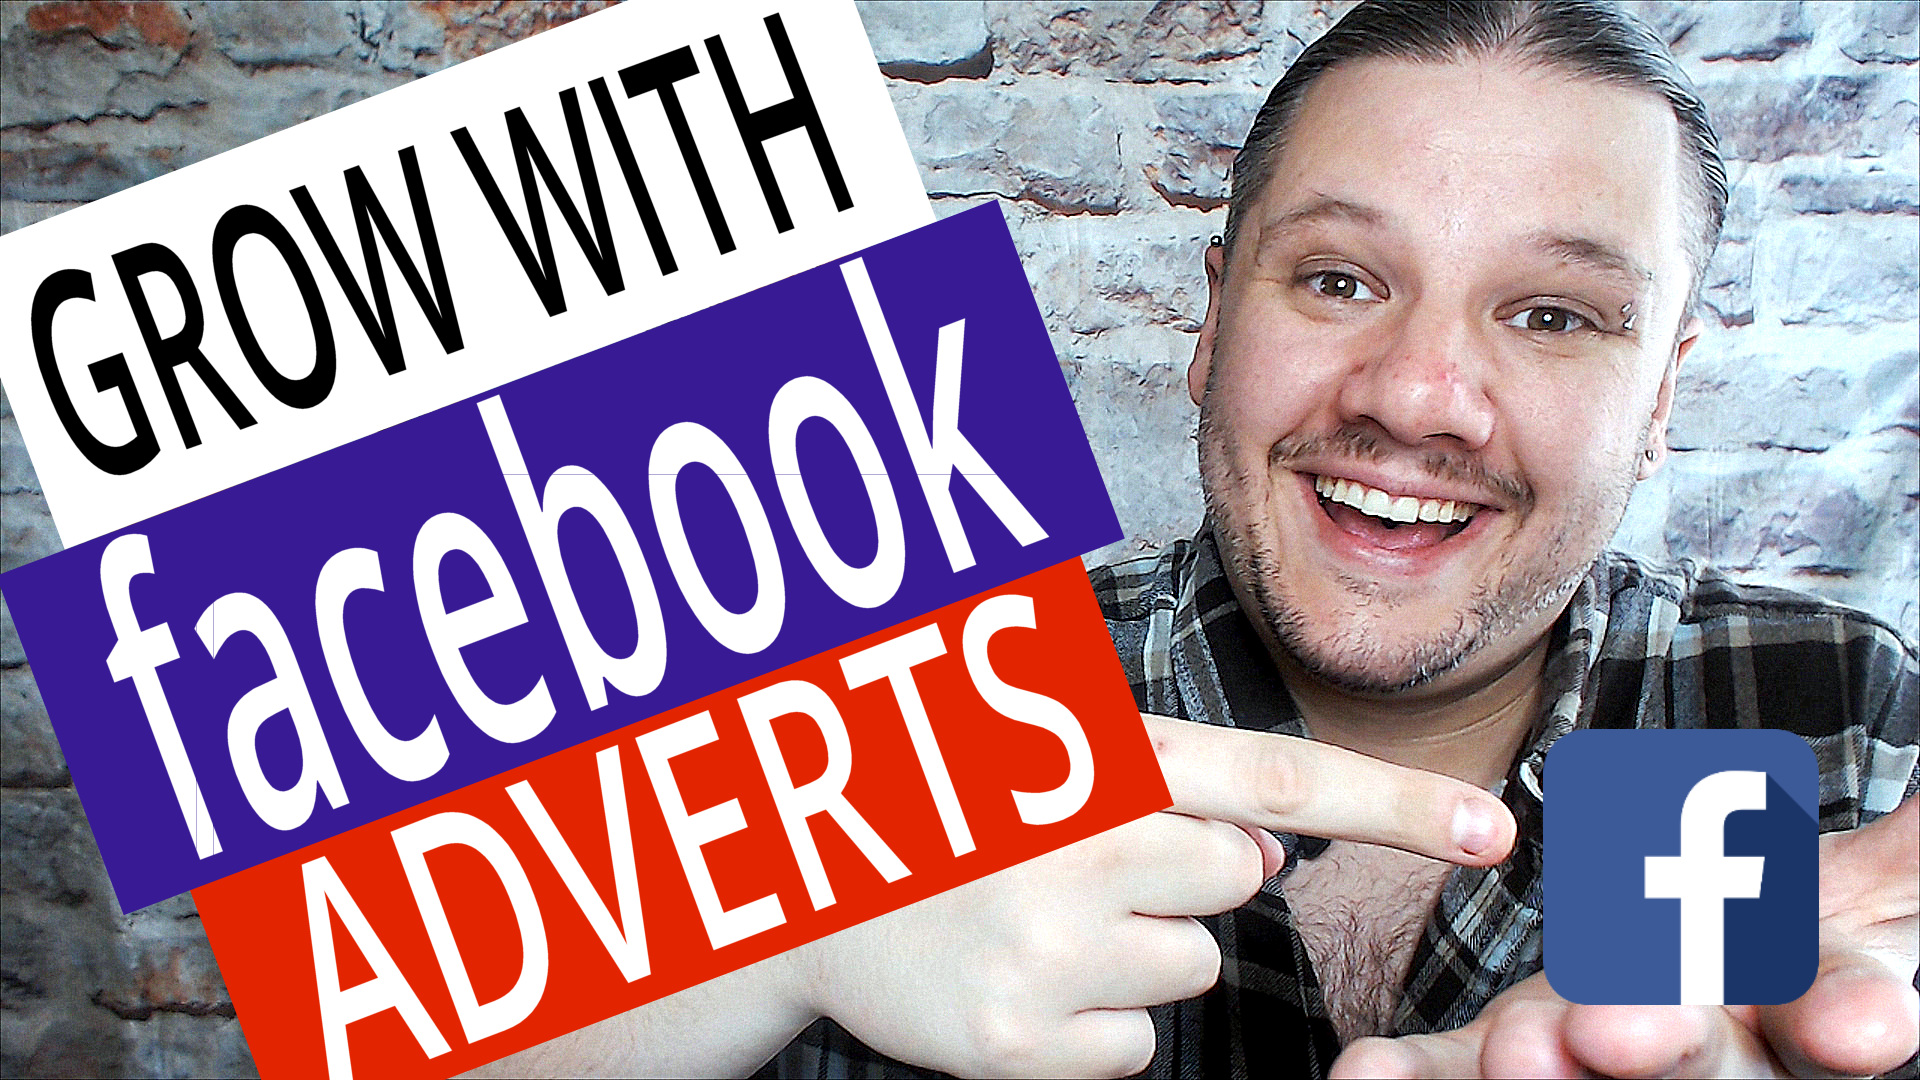 alan spicer,alanspicer,asyt,How To Promote YouTube Videos With Facebook Ads,Promote YouTube Videos With Facebook Ads,how to promote youtube videos,how to promote youtube videos on facebook,how to promote youtube videos with facebook,facebook ads,how to promote youtube video through facebook,how to grow your youtube channel with facebook,promote youtube videos on facebook,facebook ads tutorial for beginners step by step,step by step facebook tutorial,facebook marketing